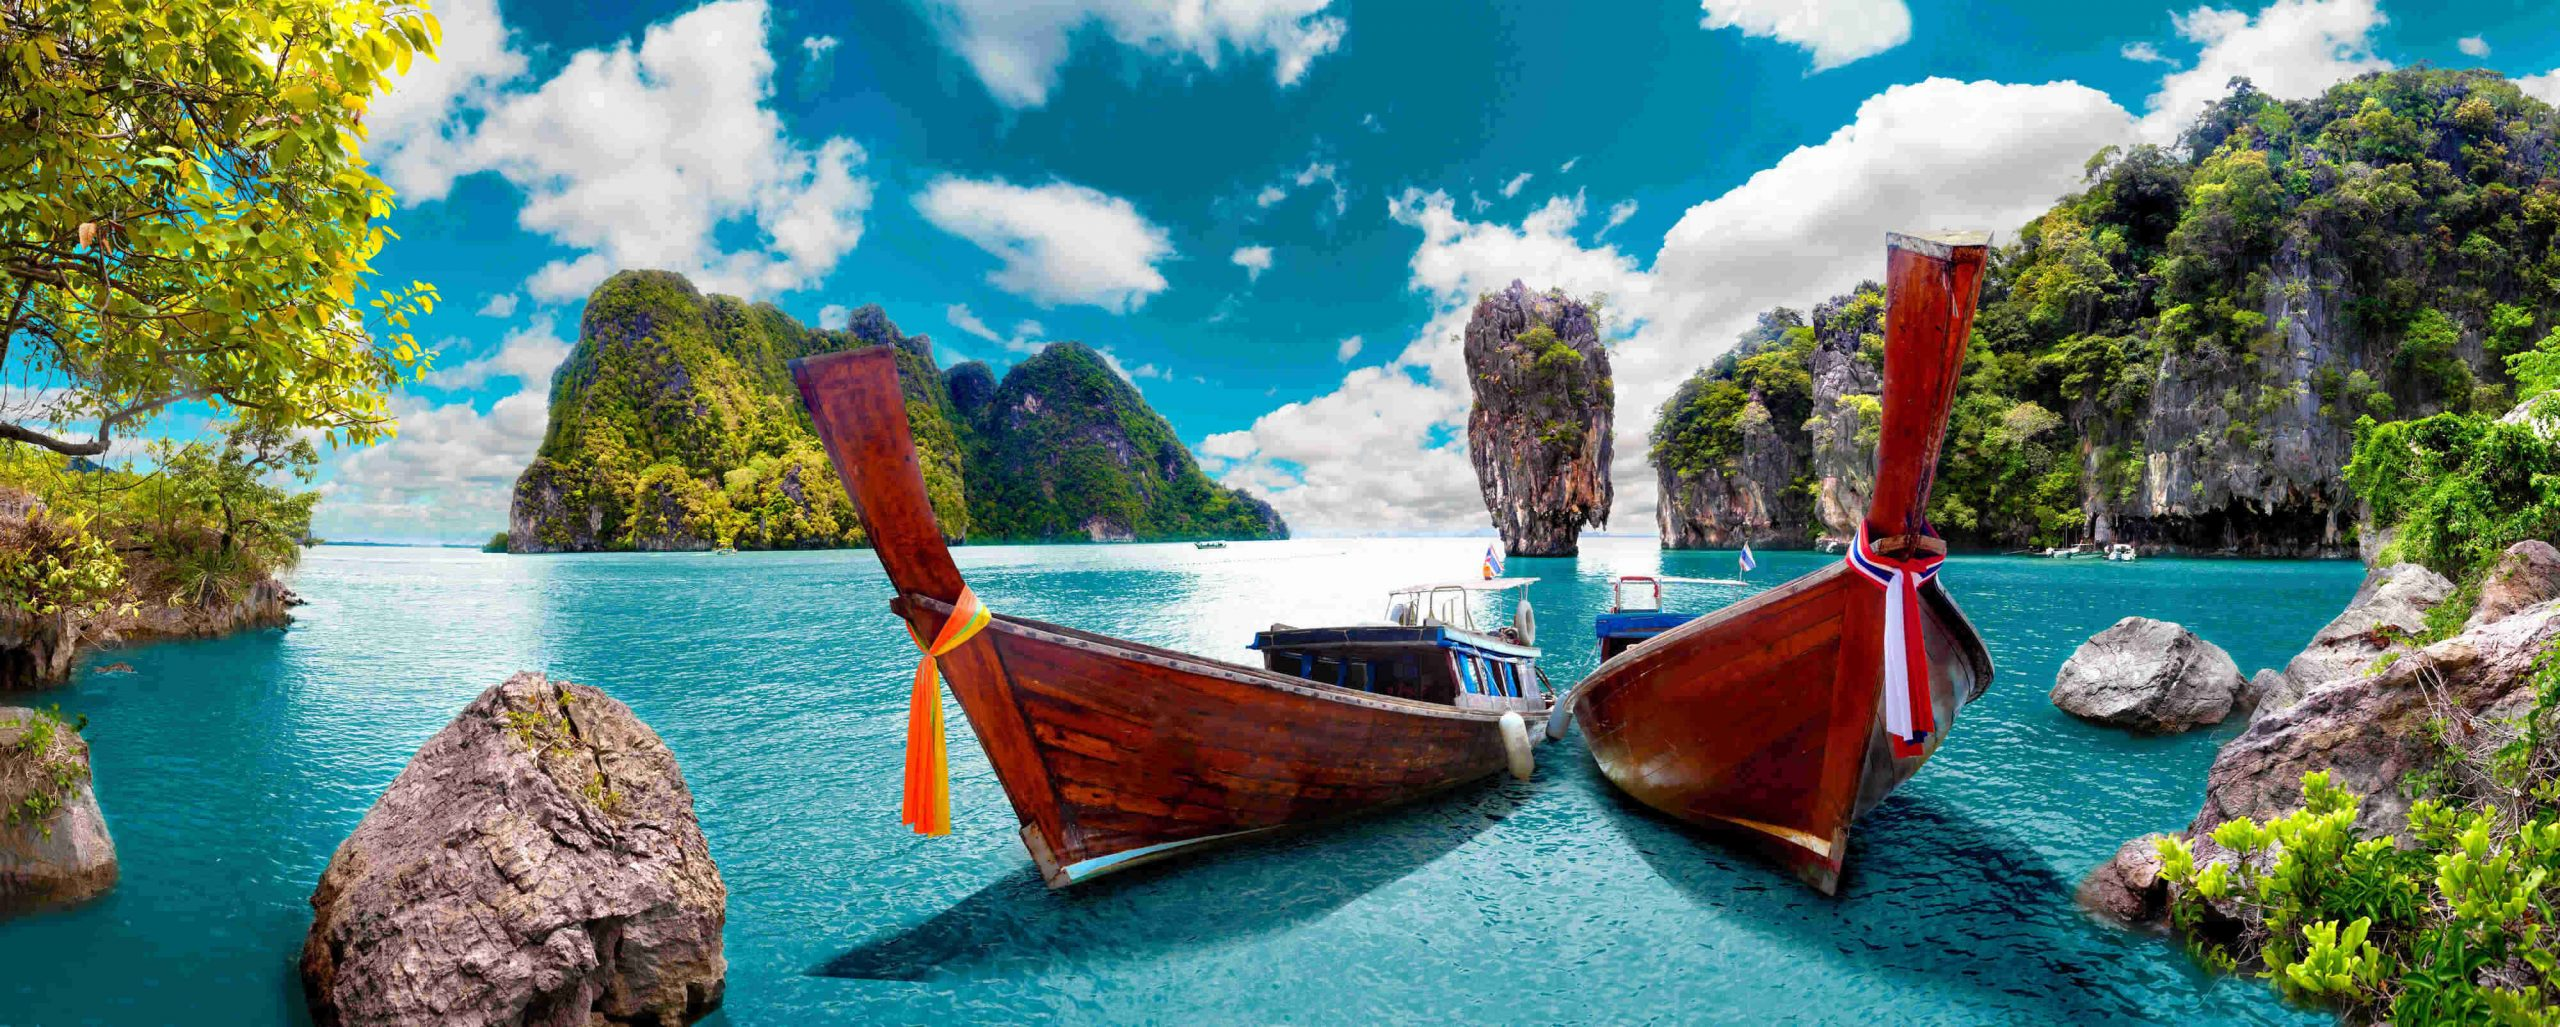 Scenic beaches of Thailand with long tail boats